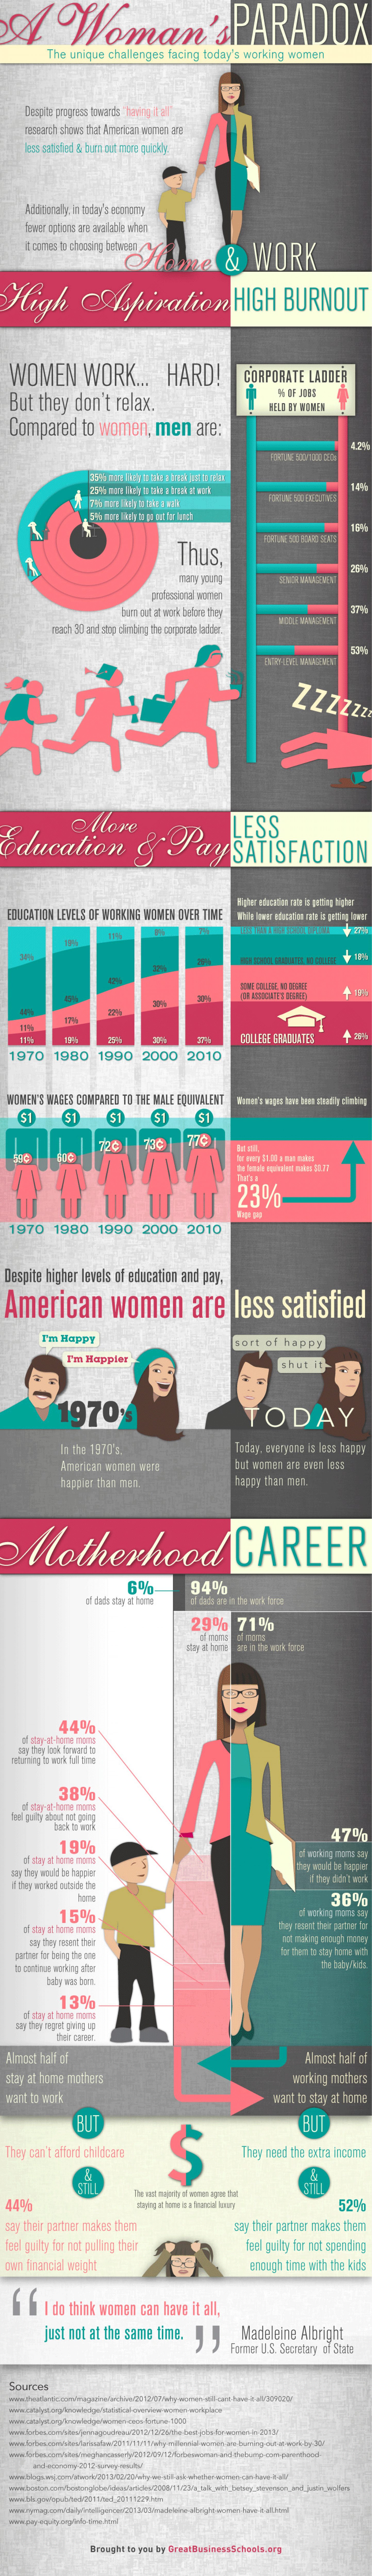 "A Woman's Paradox: The unique challenges facing women who ""want it all"" Infographic"